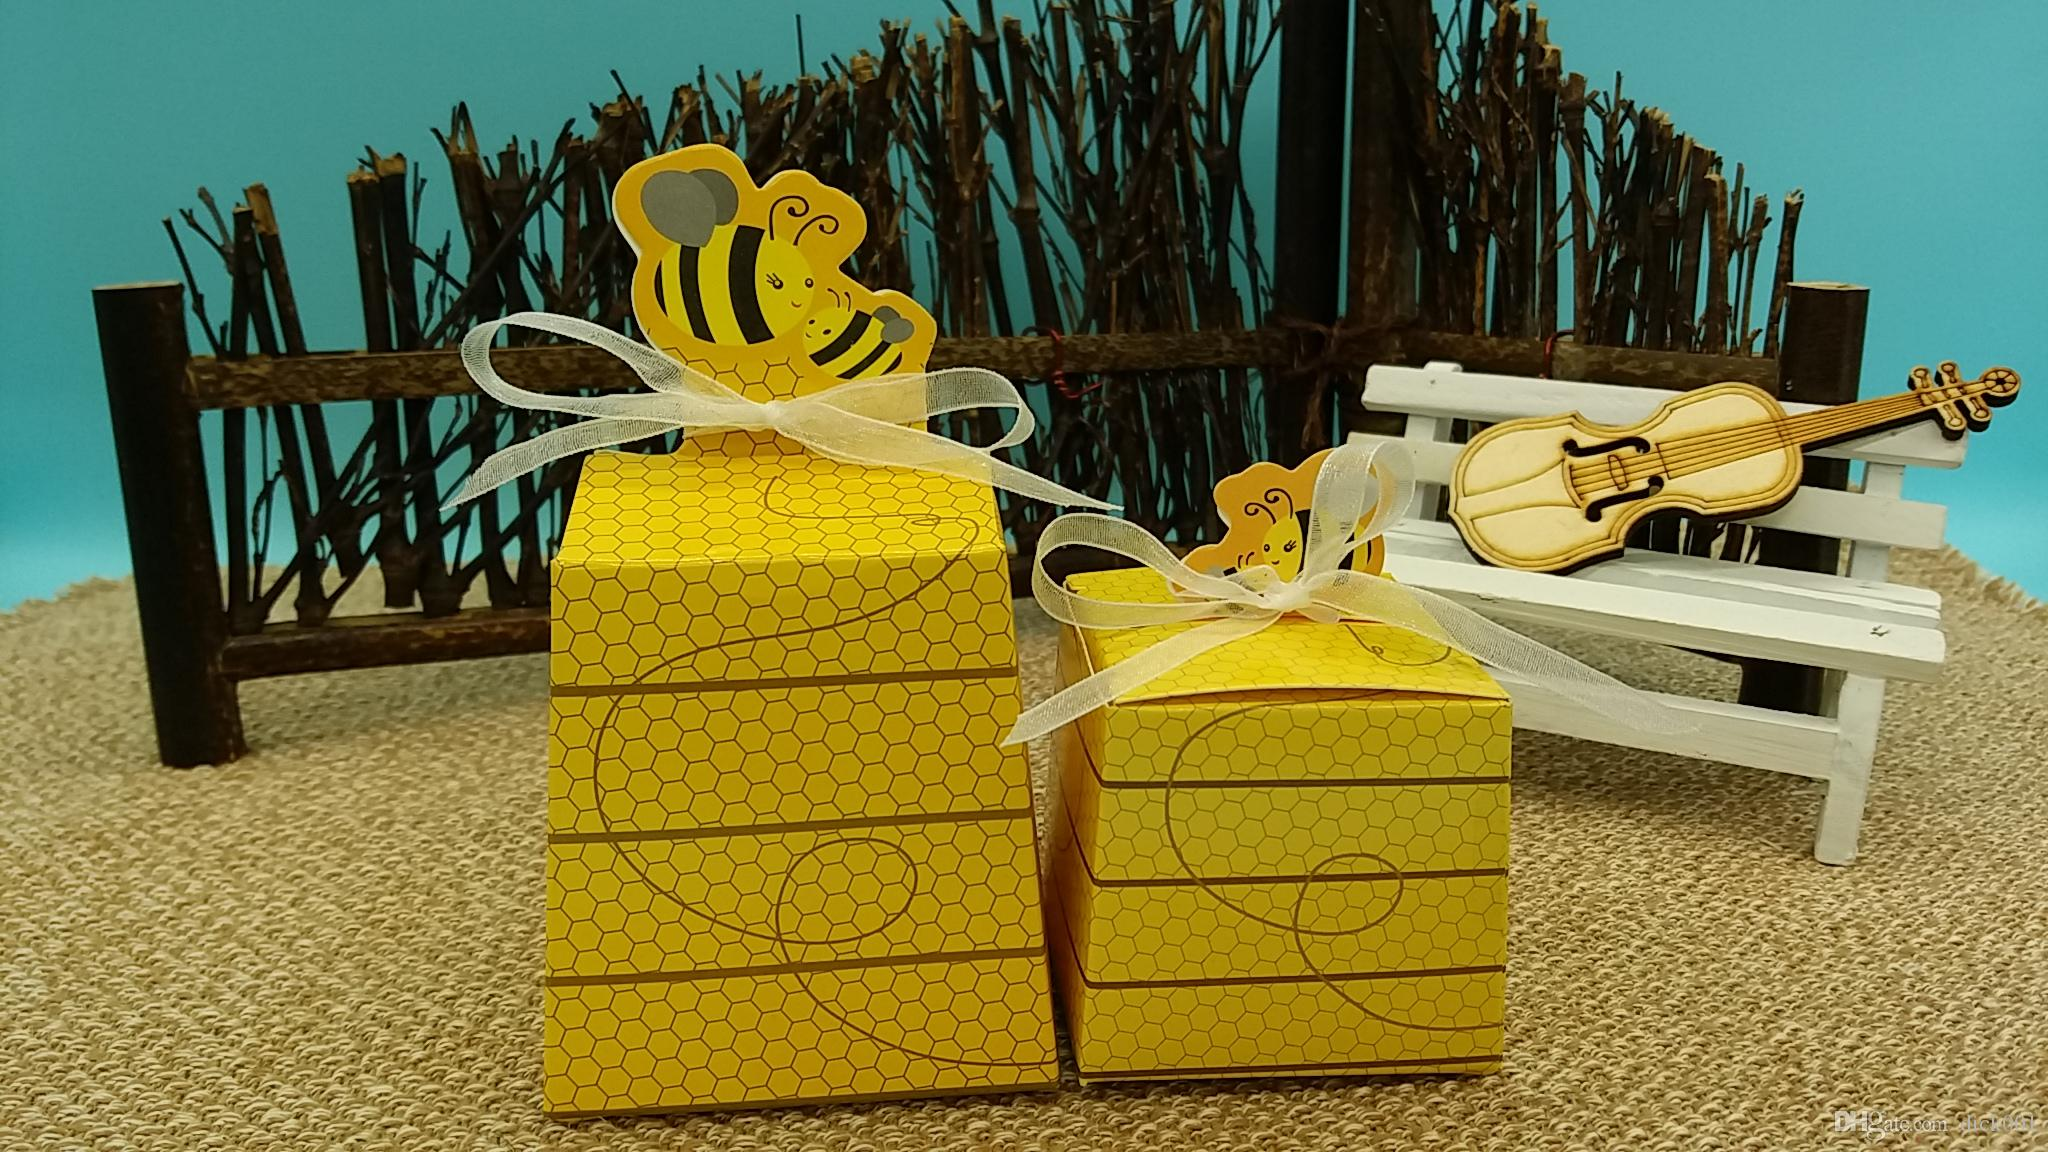 2016 New 50pcs Lots Sweet Honeybee Candy Box Baby Shower Gift Birthday Party Decorations Kids Favor Supplies 2018 From Dick001